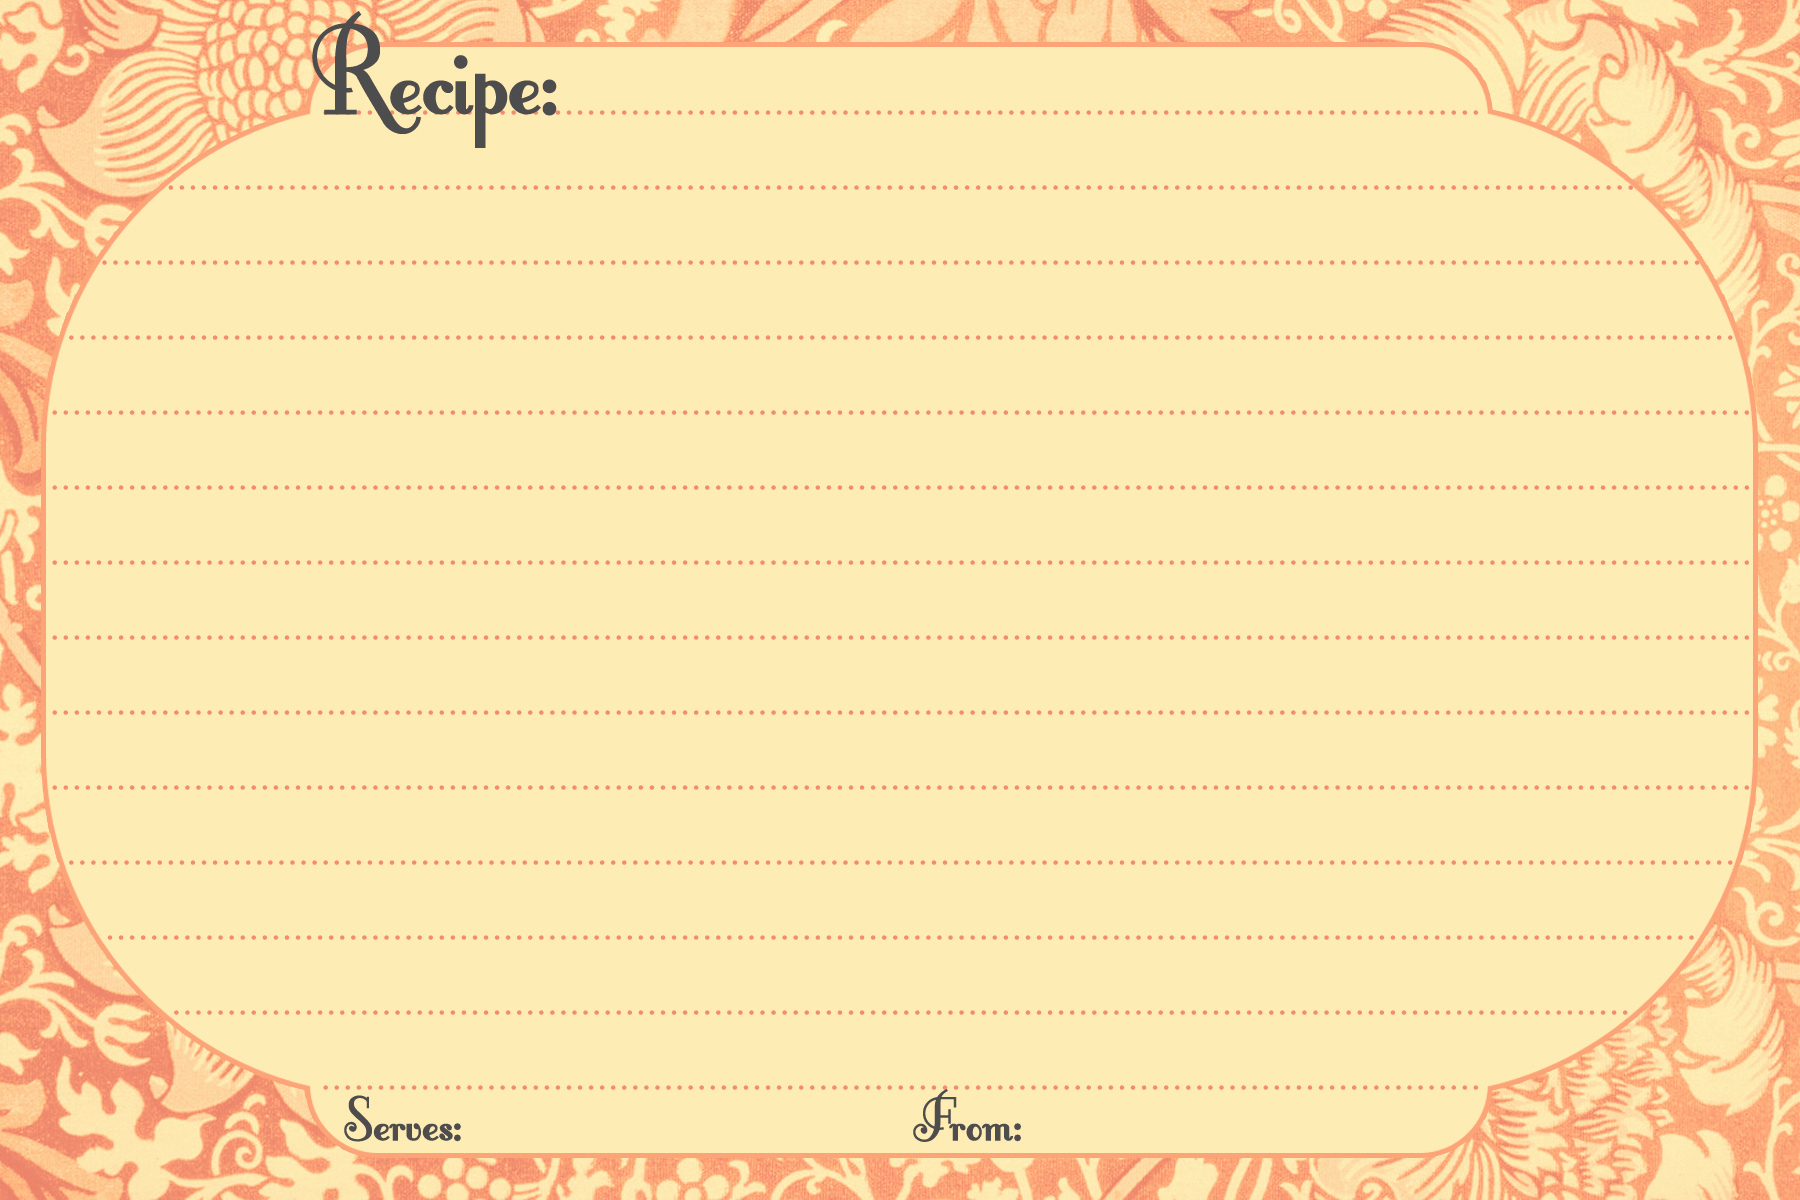 Free Printable Photo Cards Templates New Free Printable Recipe Cards